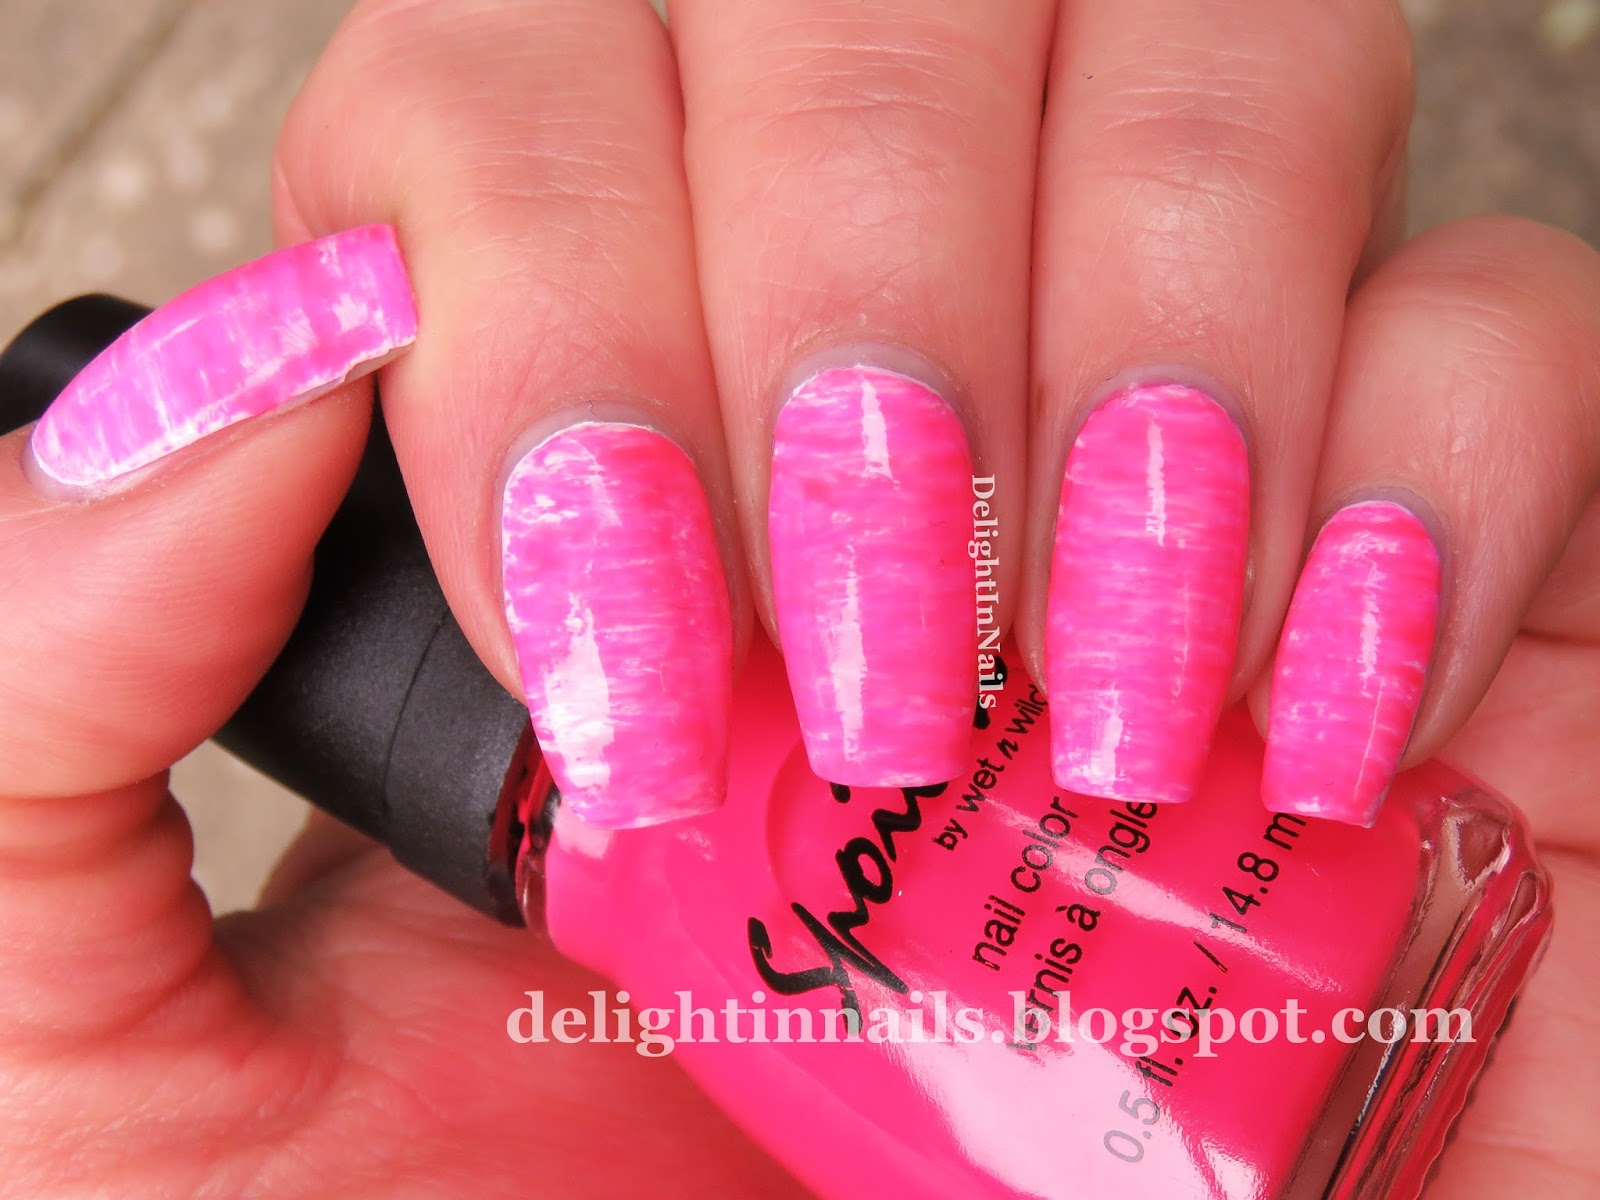 Delight In Nails: 40 Great Nail Art Ideas - Hot Pink